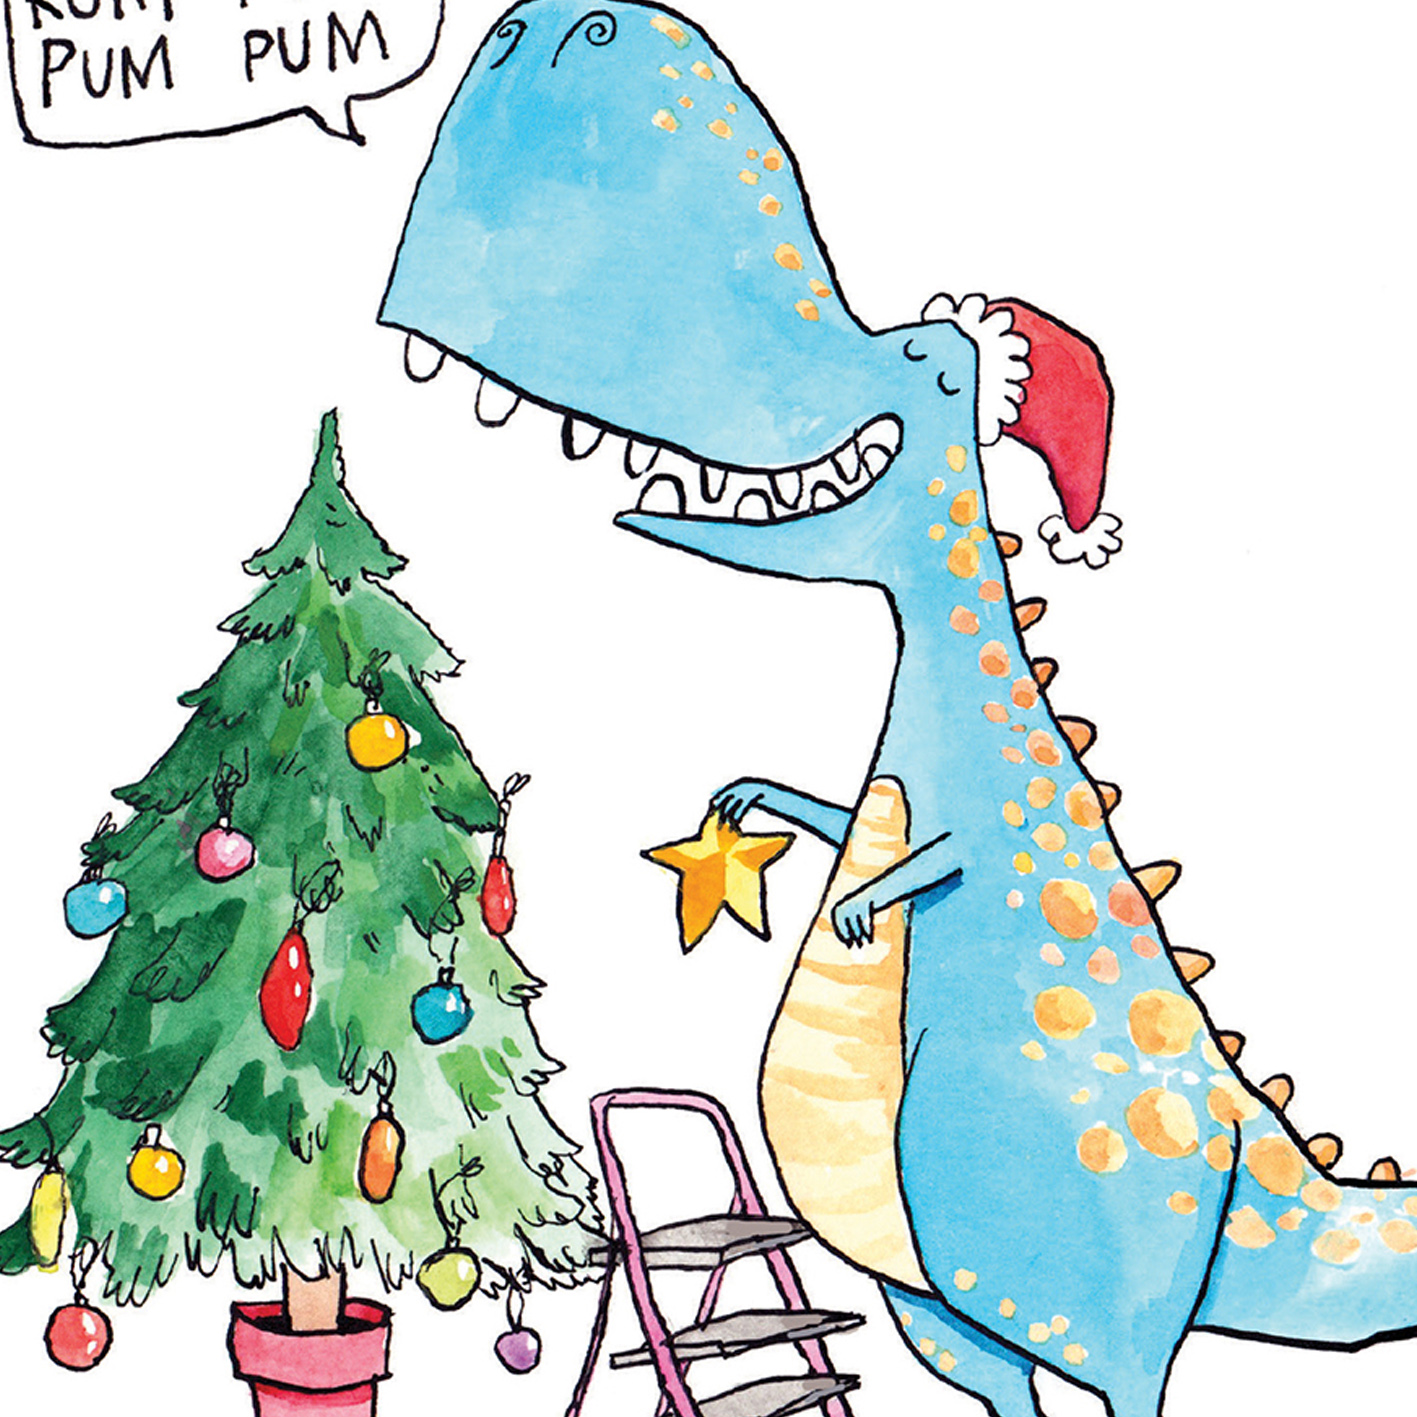 Rah-Rum_-Dinosaur-themed-Christmas-card-with-Christmas-carol-joke_CH18_CU